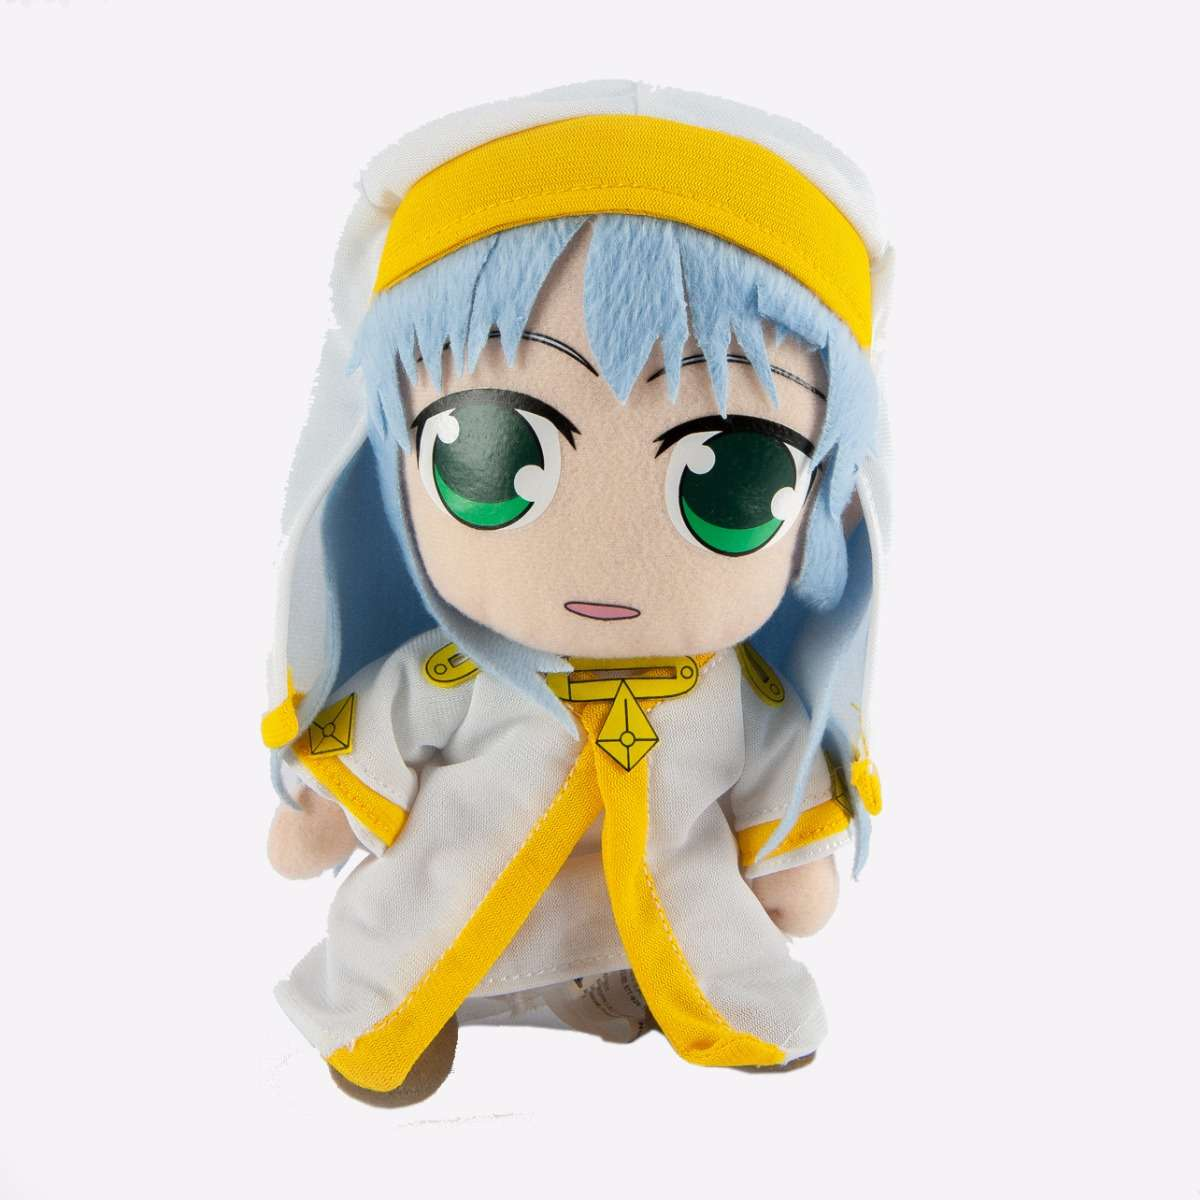 Index Plush 8'' Toys & Games